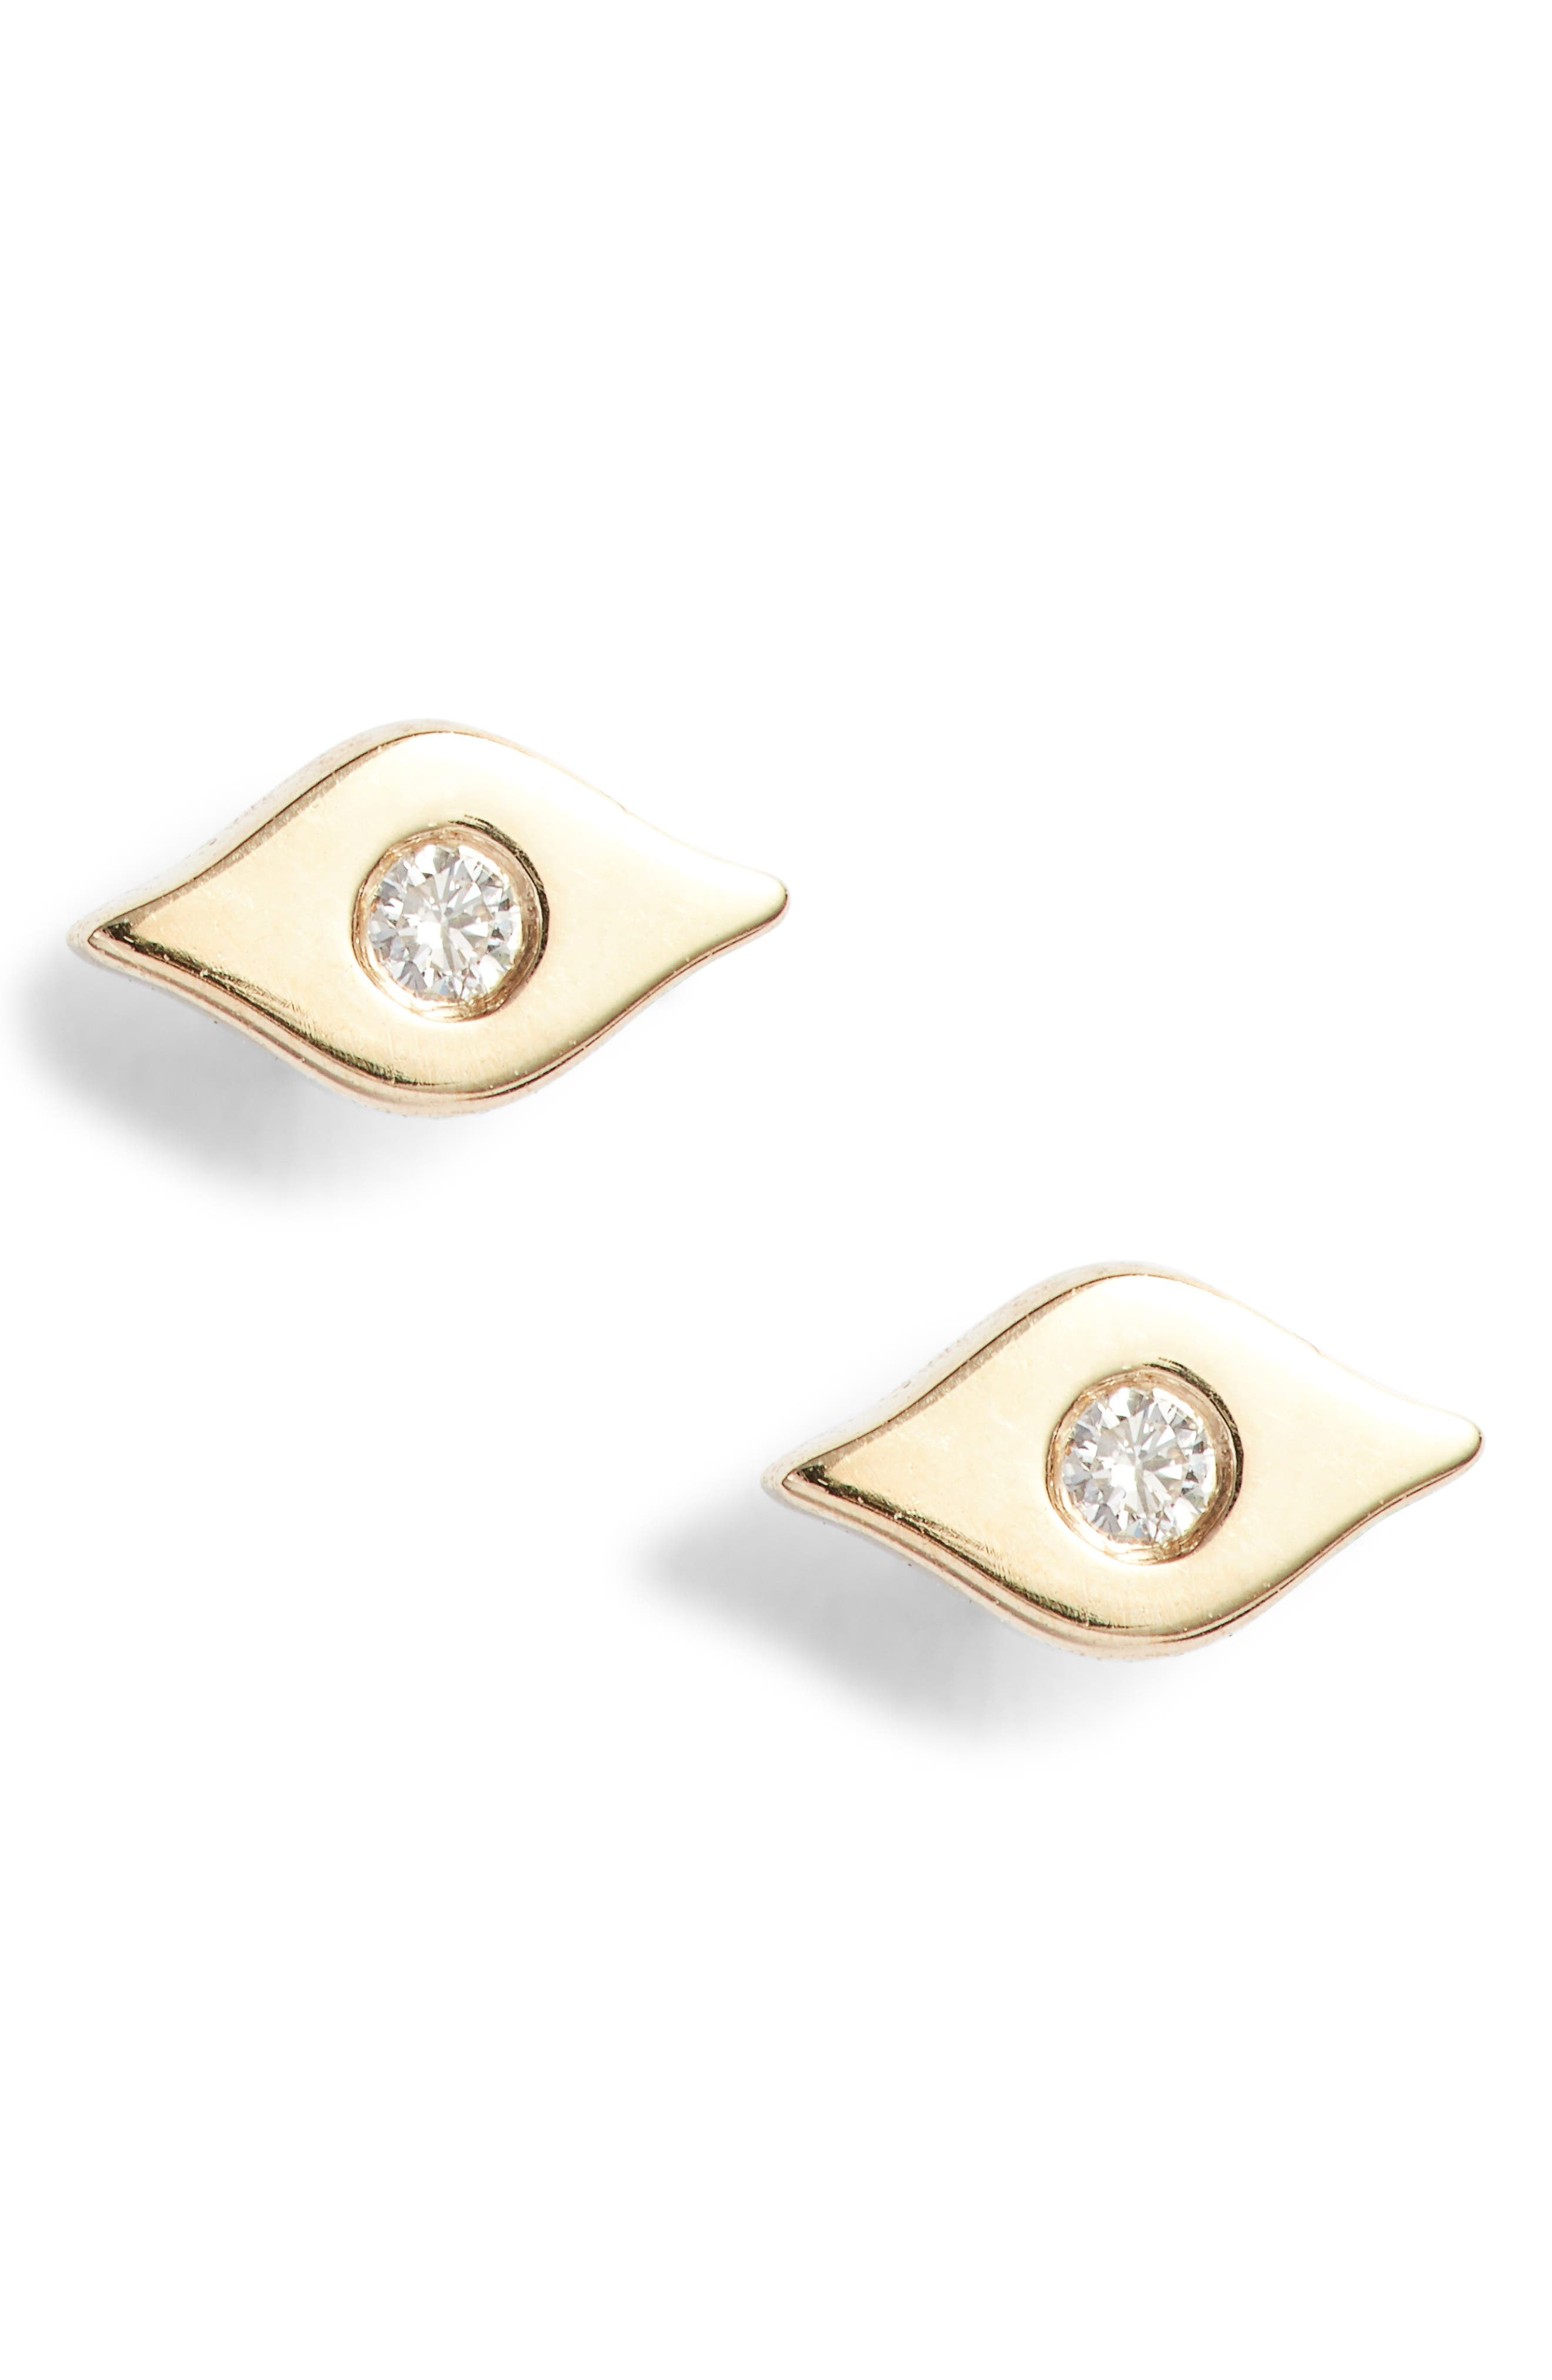 Evil Eye Center Diamond Stud Earrings,                         Main,                         color,